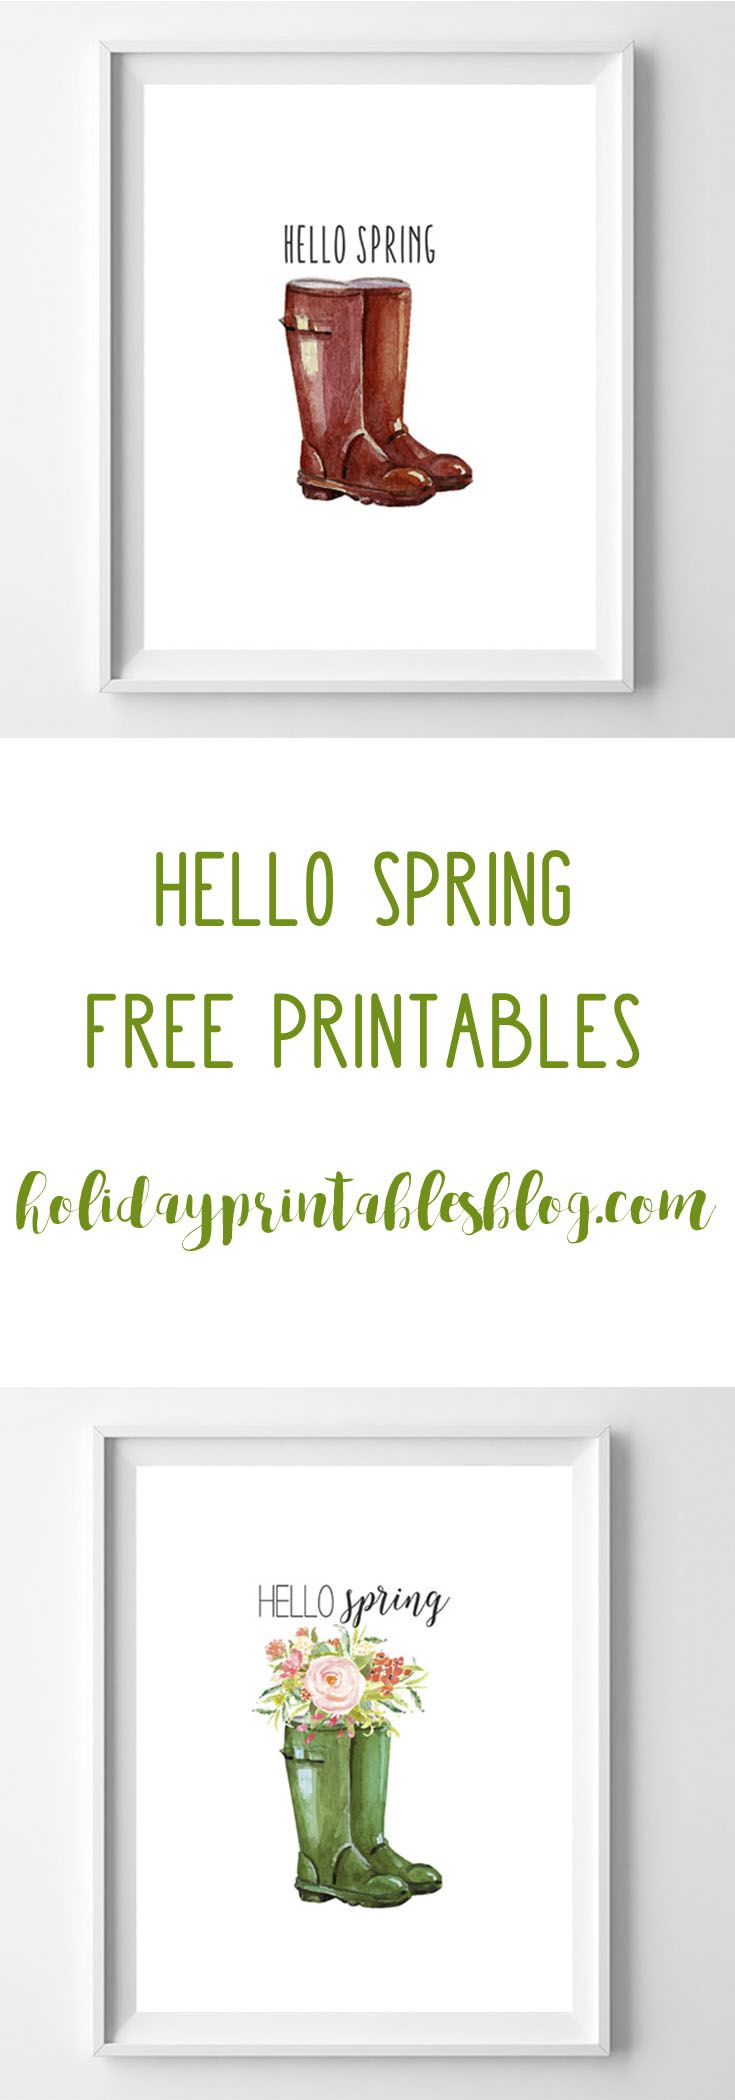 "Welcome spring with these ""hello spring"" free printables featuring wellington boots! A simple and sweet printable perfect for your home decor."